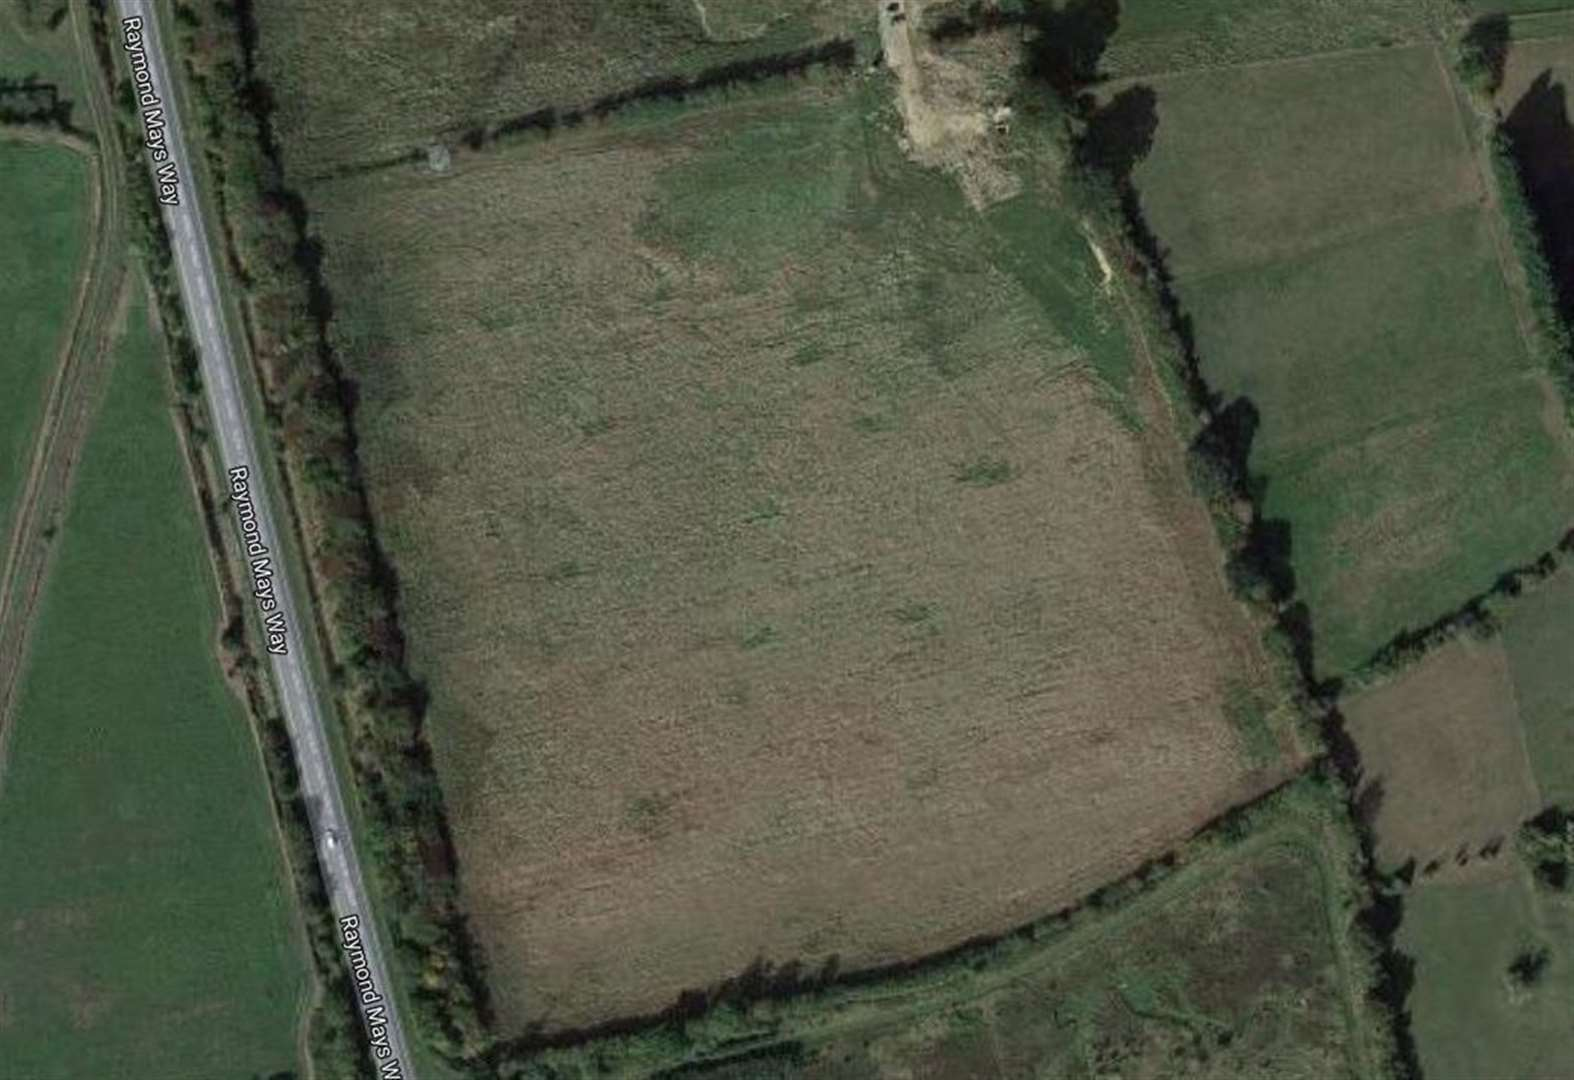 Assurances over land for 174 homes